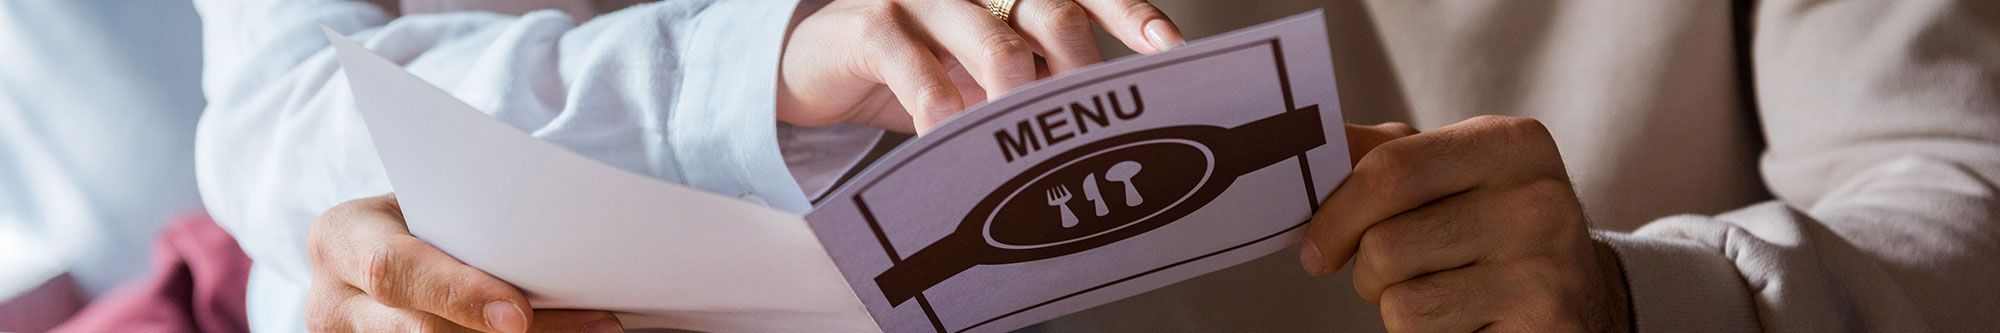 Woman finger pointing at menu in restaurant